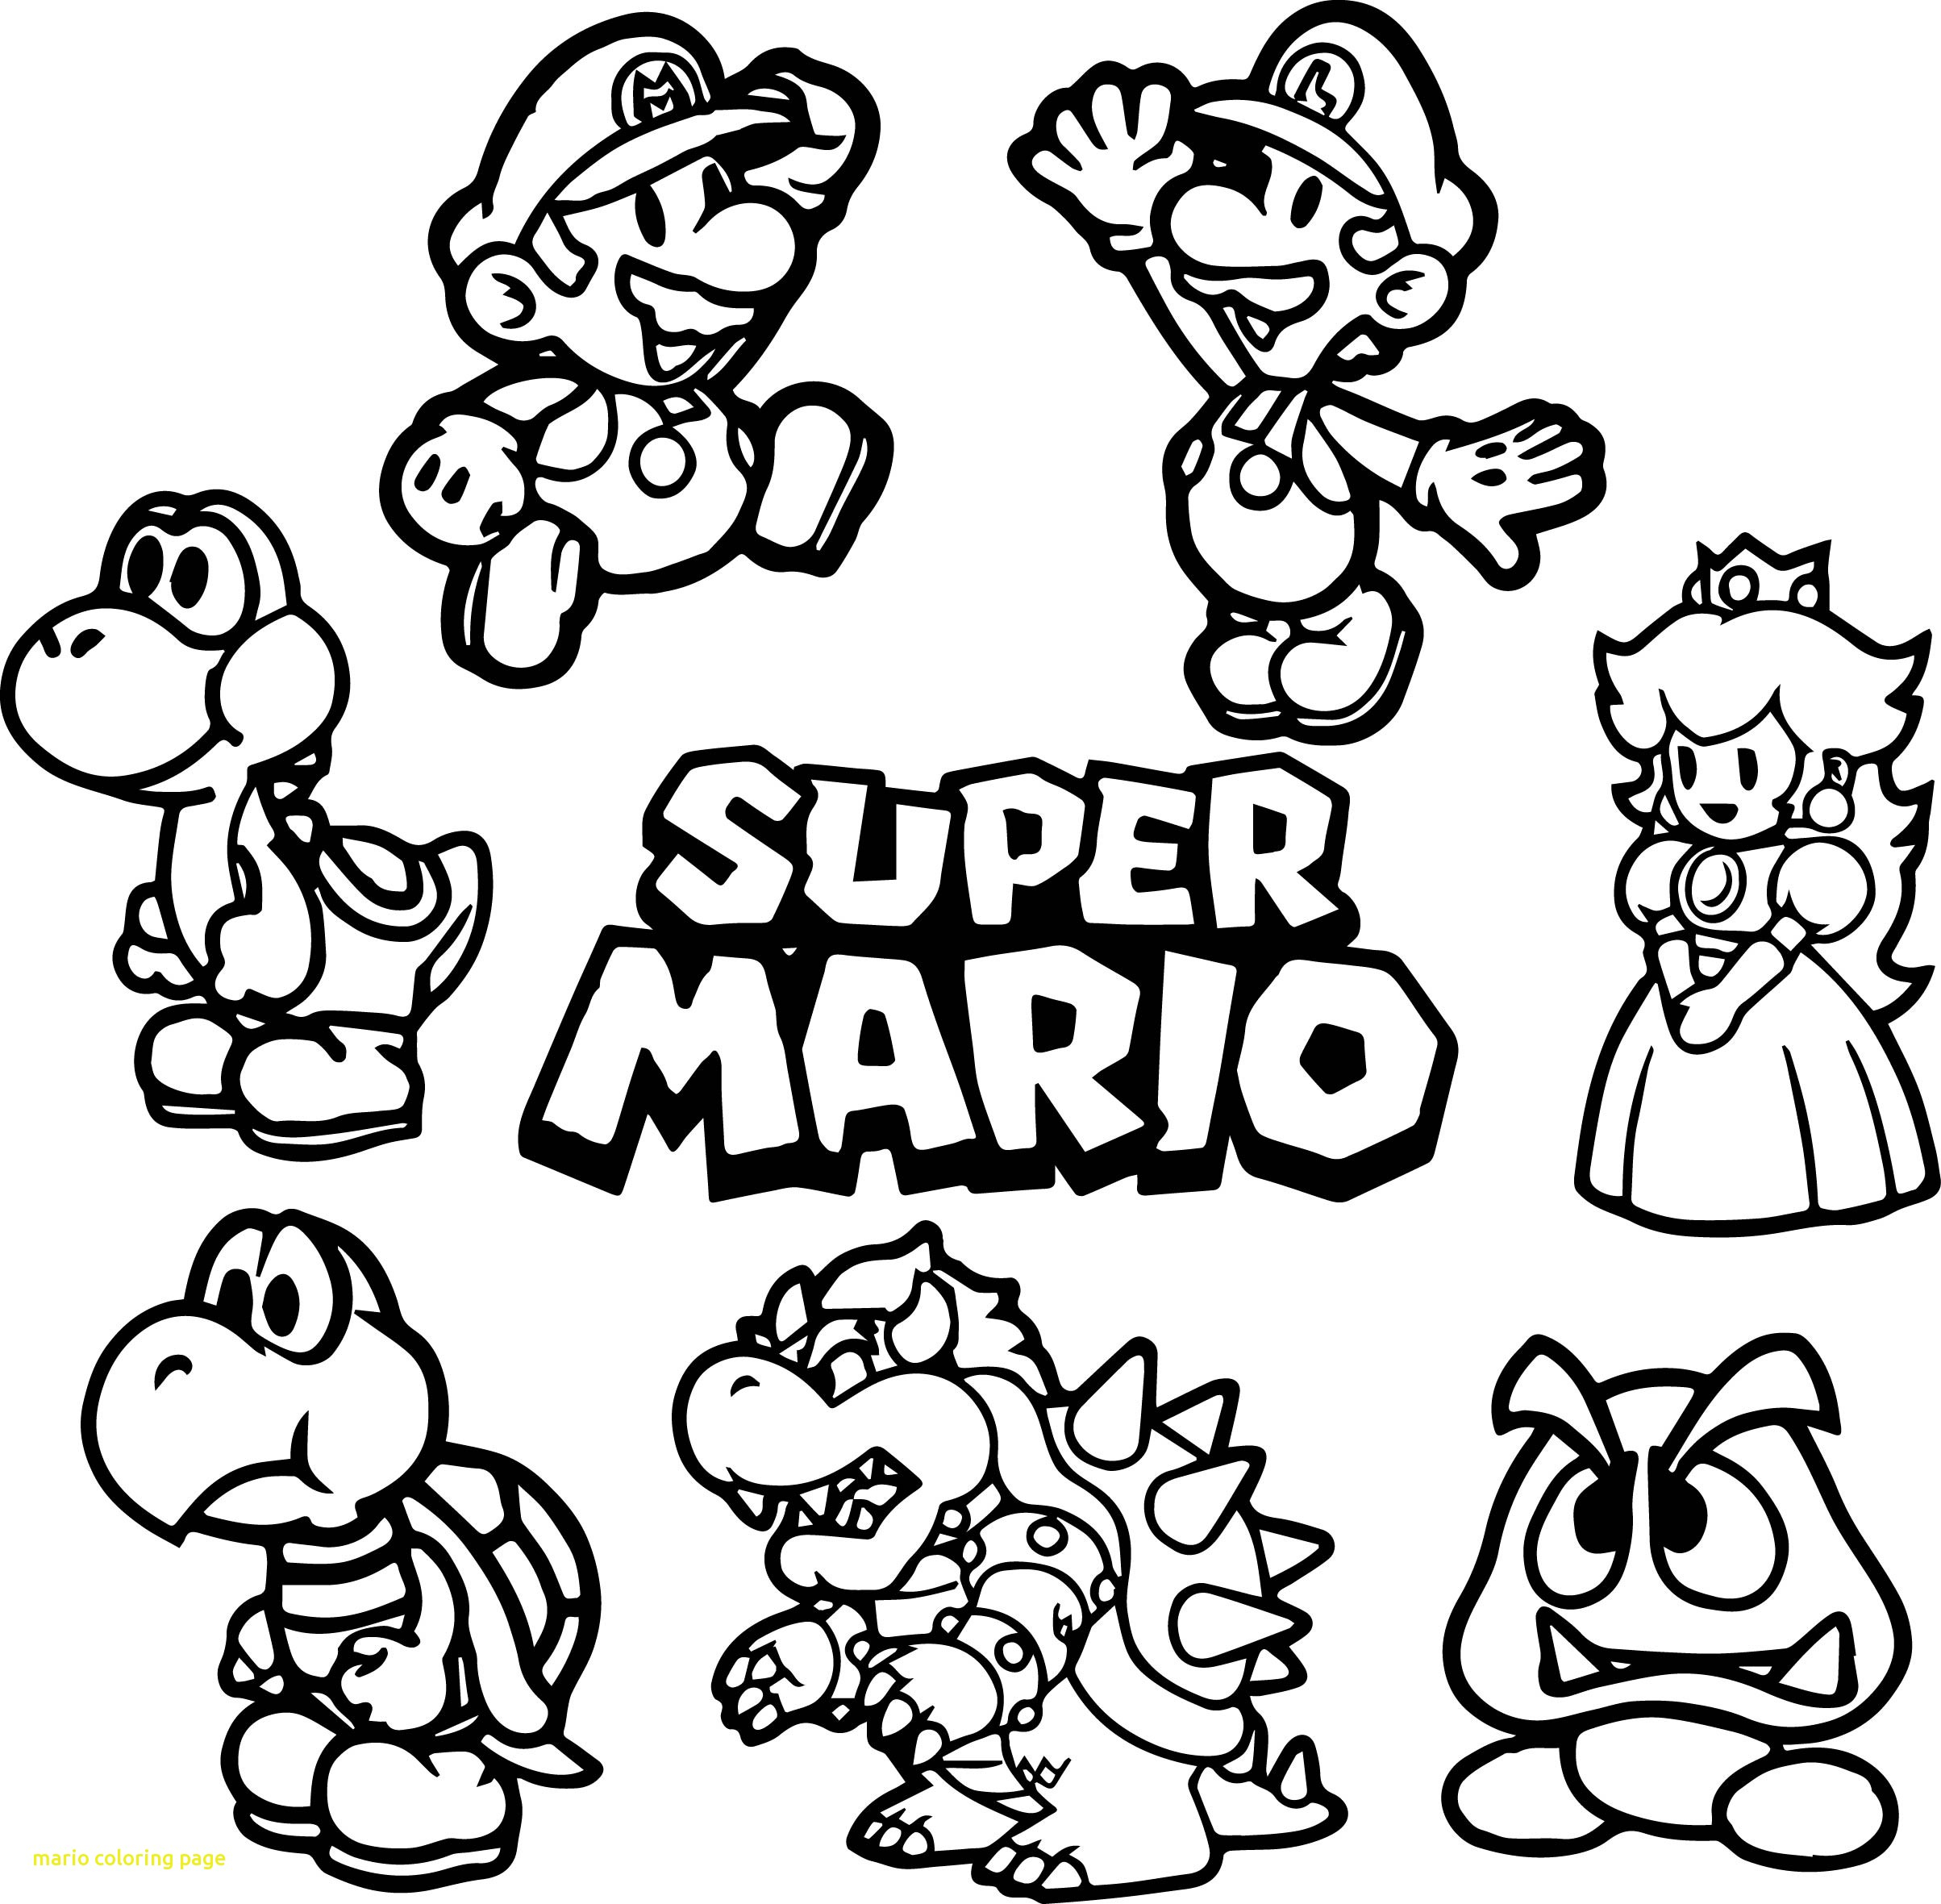 Super Mario Coloring Pages Collection Of Super Mario Bros Coloring Pages to Print